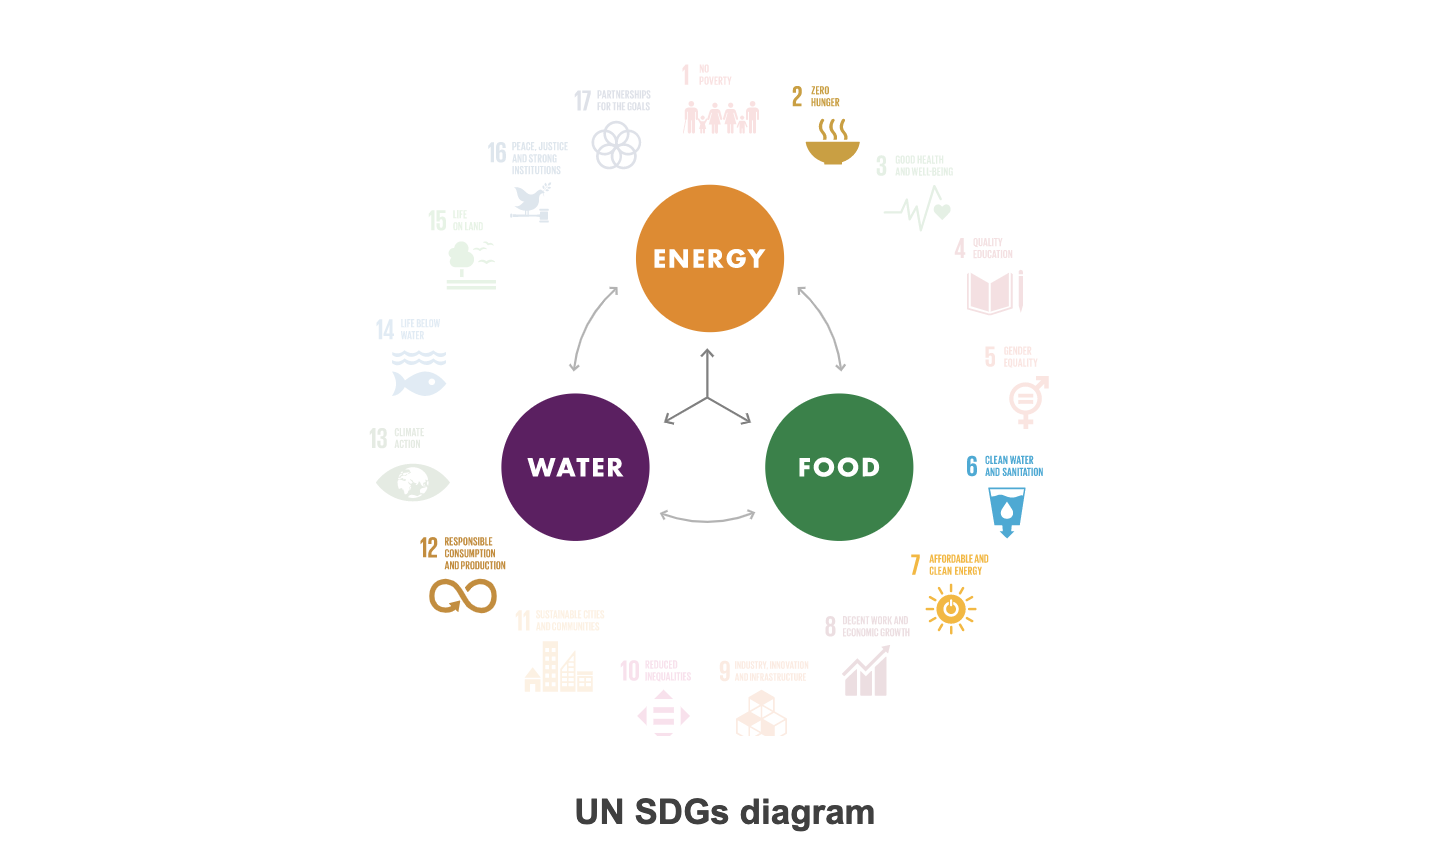 UN SDG diagram Oman